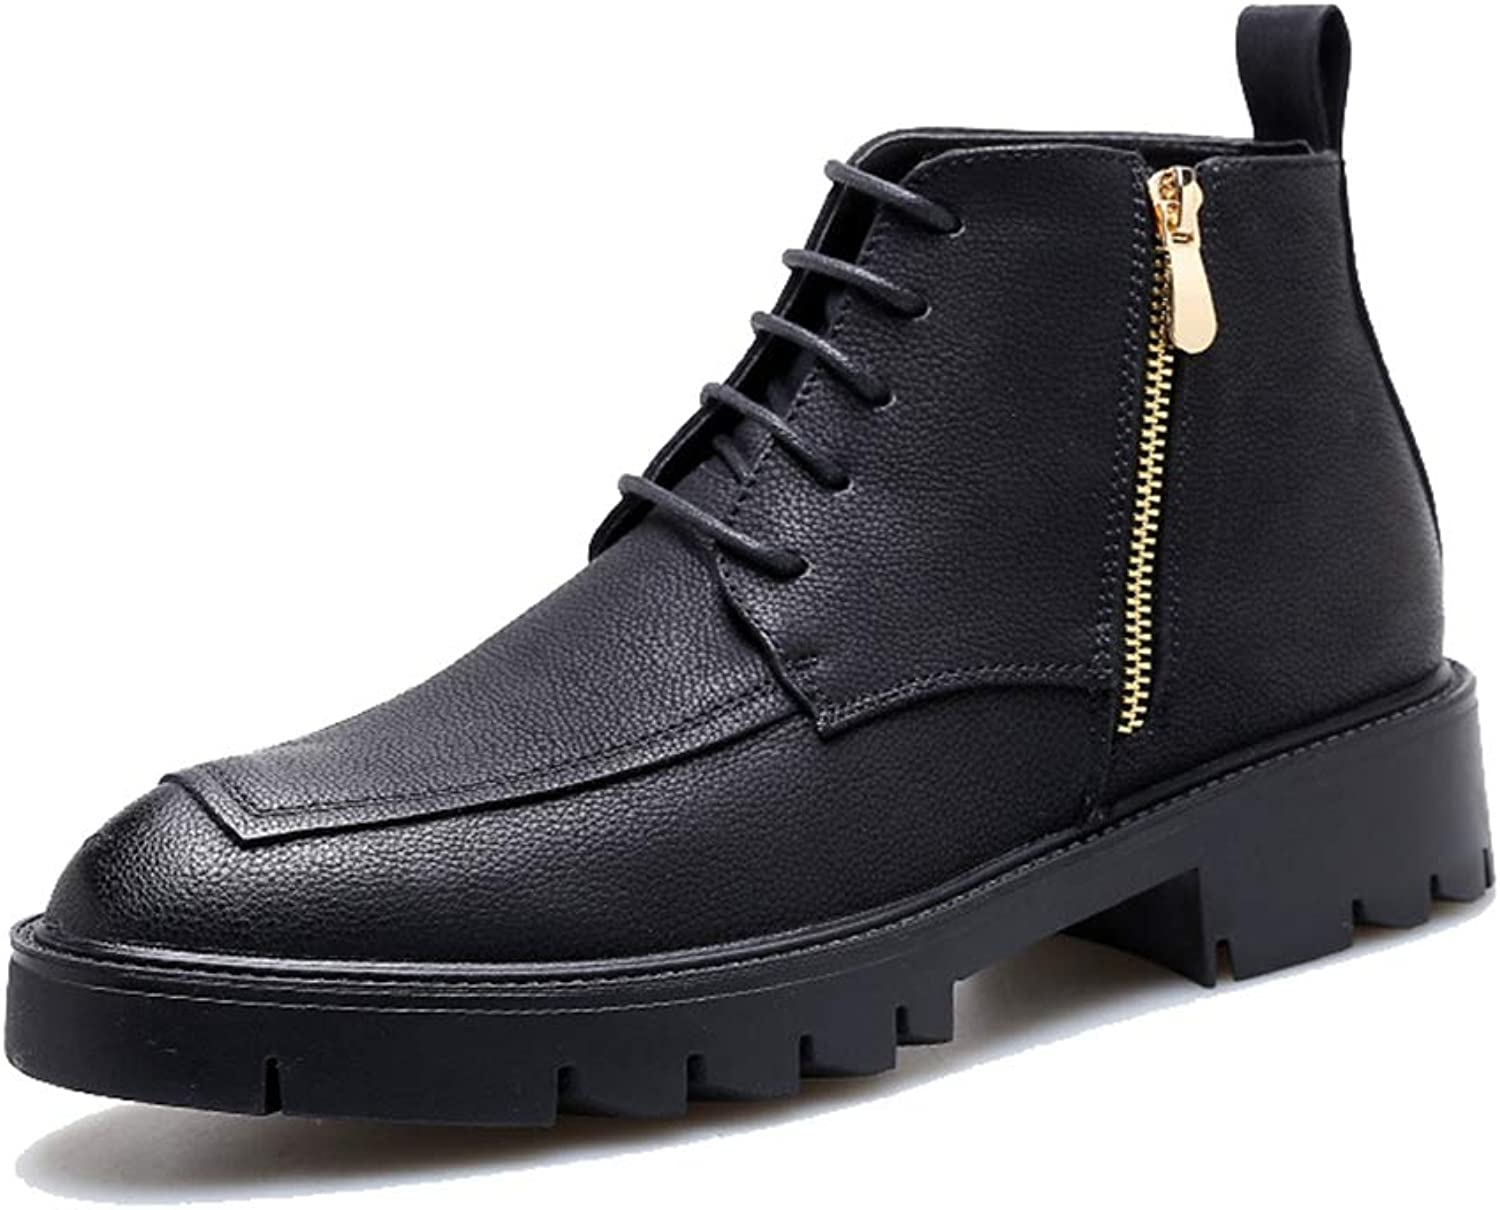 Phil Betty Mens Booties Breathable Non-Slip Zipper Warm Comfortable Casual Martin Boots